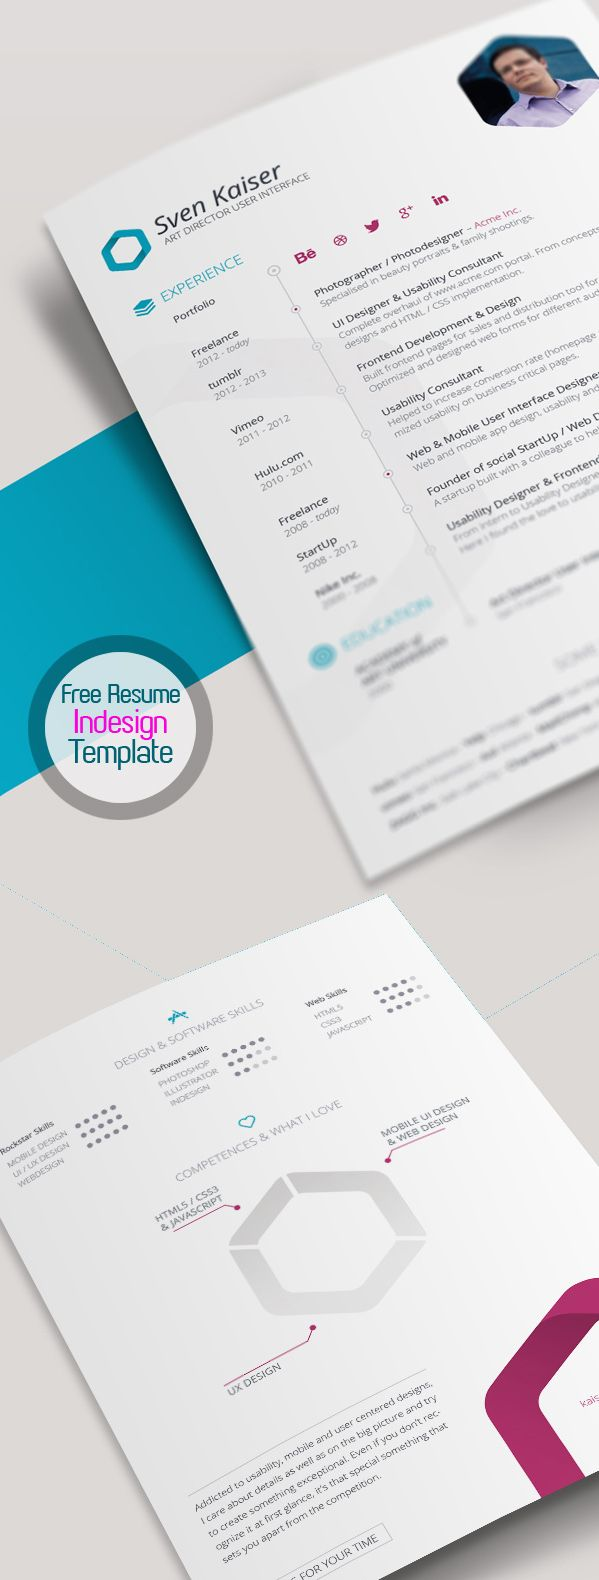 Free Resume Template For Indesign Vita  Cv  Job SearchResume